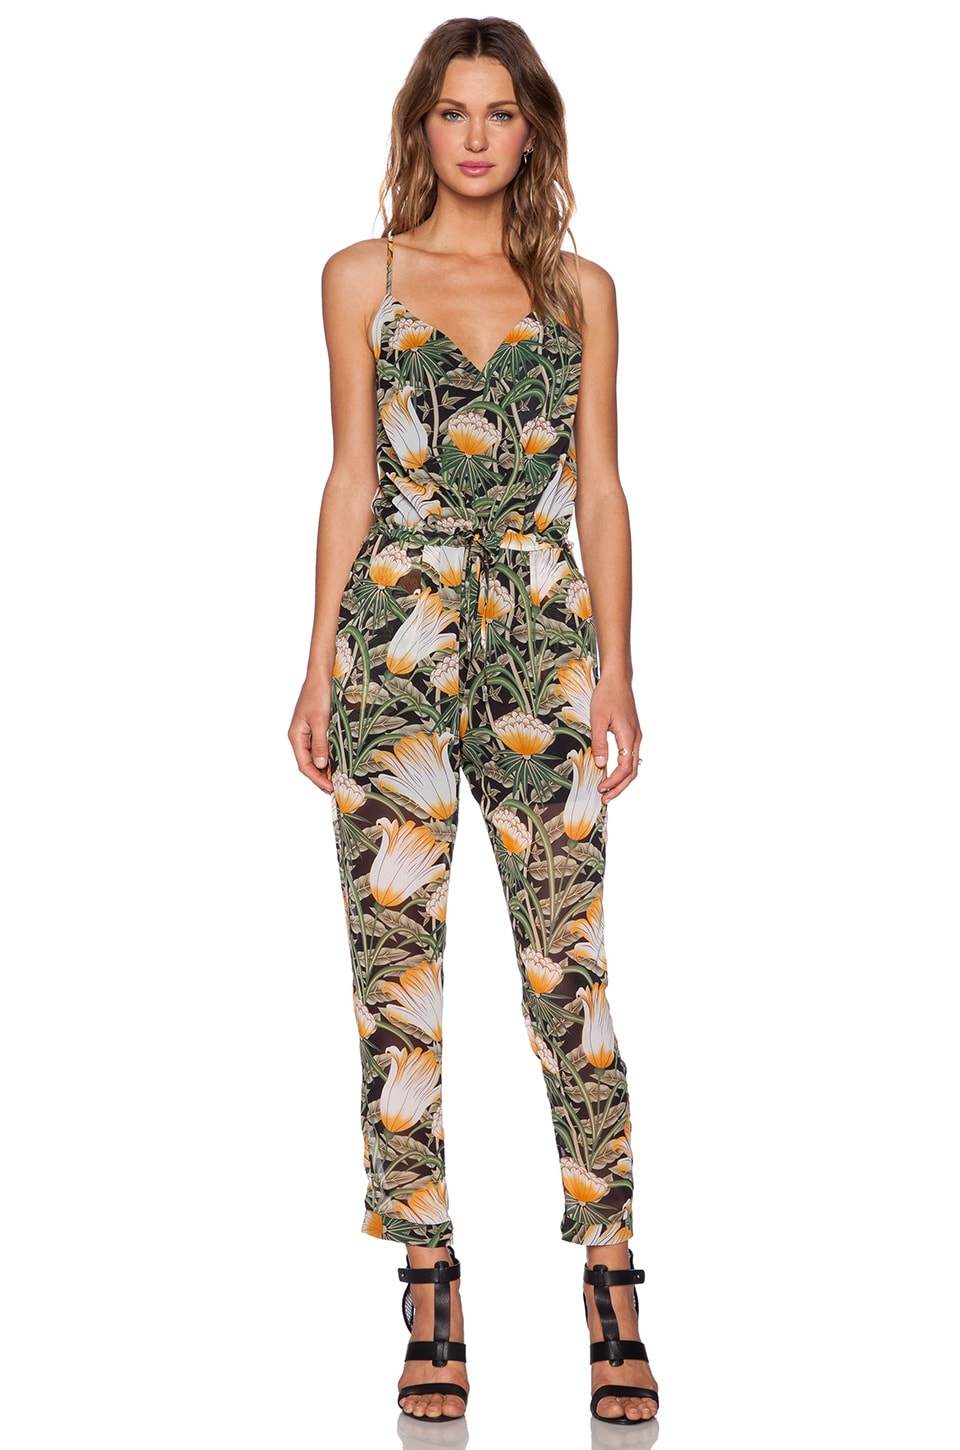 a622ef58f96 Shades of Grey by Micah Cohen Spaghetti Strap Jumpsuit in Jungle Flower